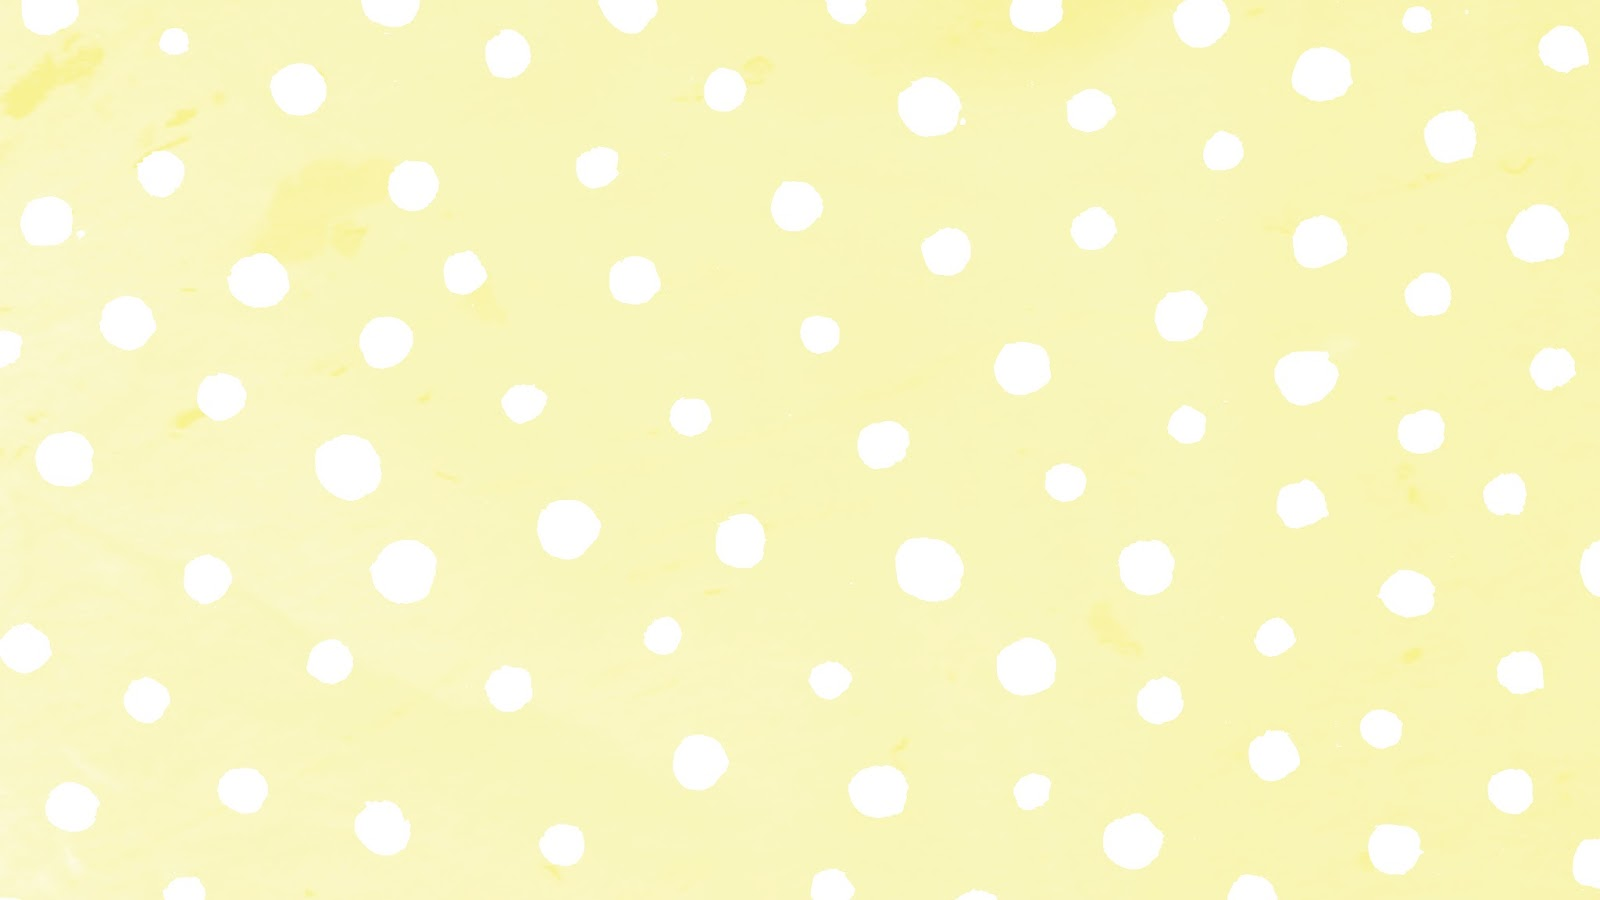 YELLOW SPOTS - 9 PRETTY PASTEL DESKTOP AND PHONE WALLPAPERS FOR SPRING.